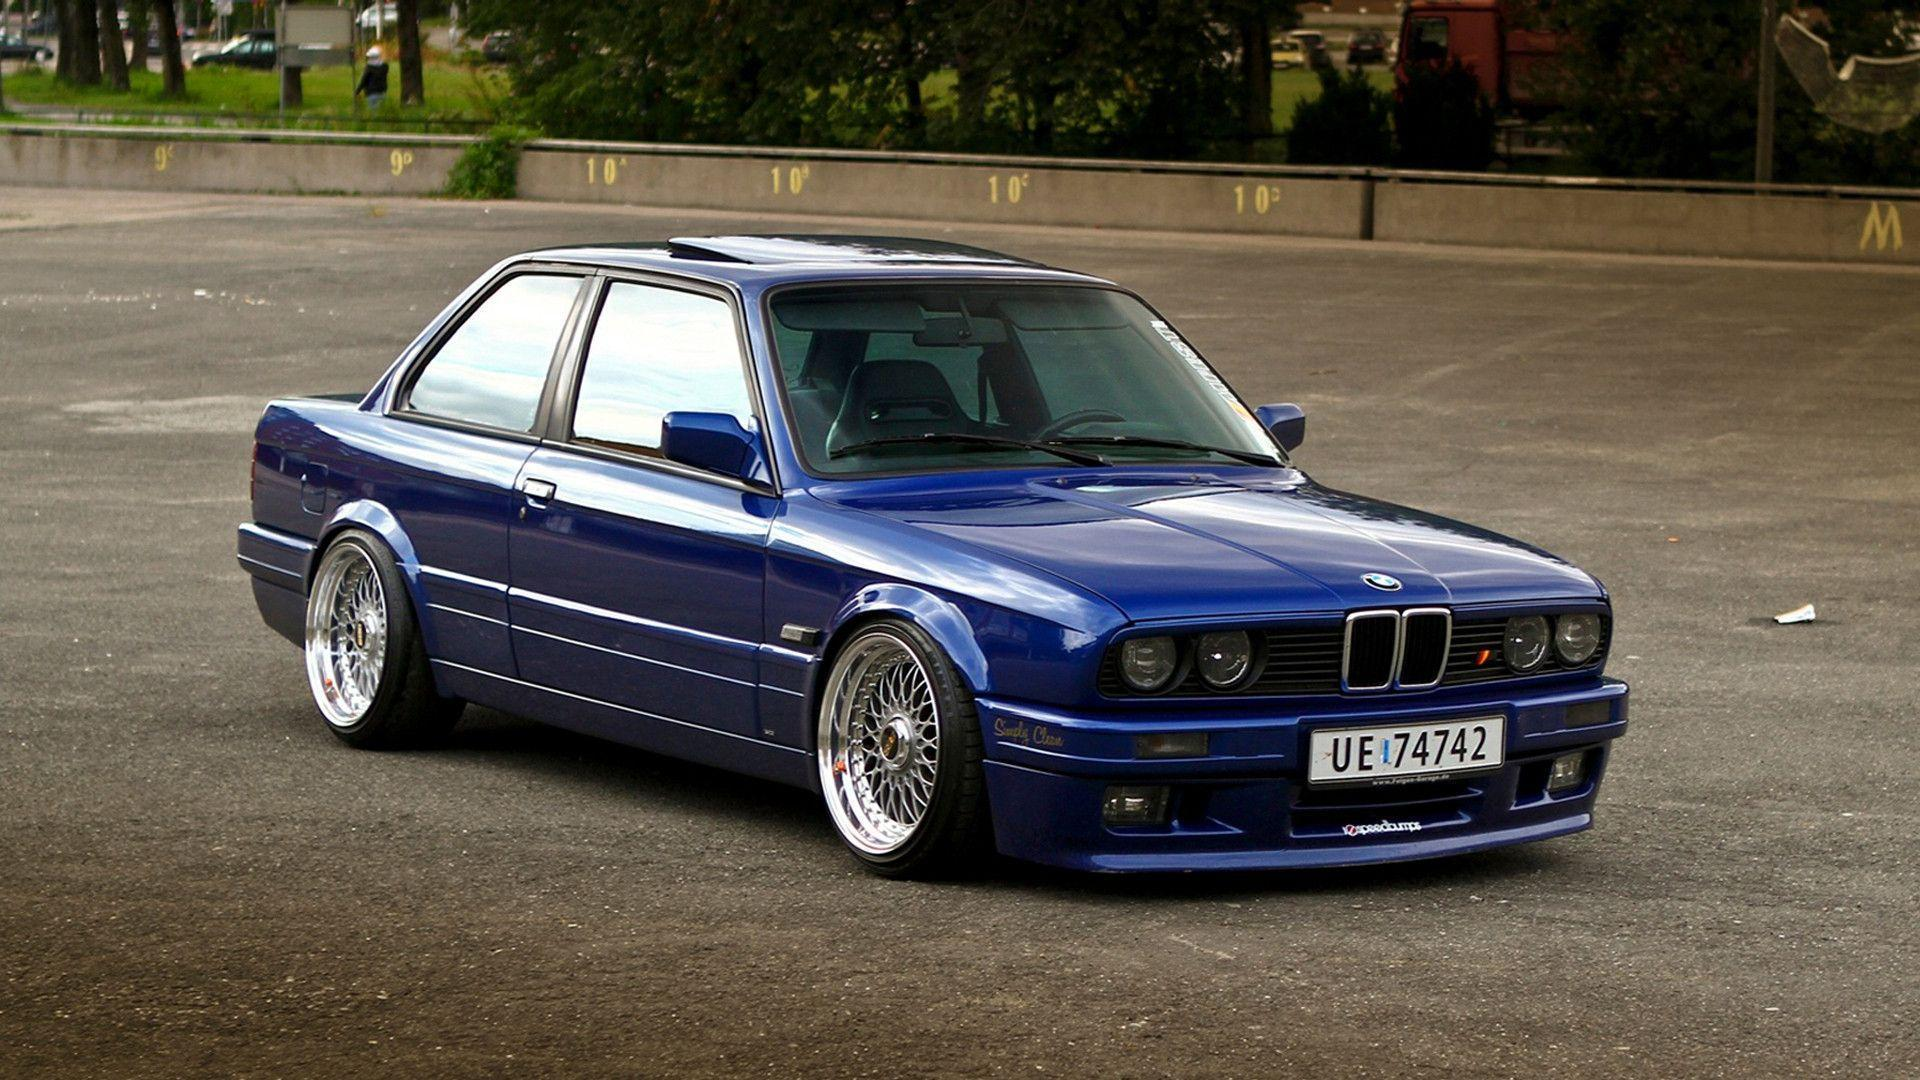 Bmw E30 Wallpaper on 1983 volkswagen cabriolet